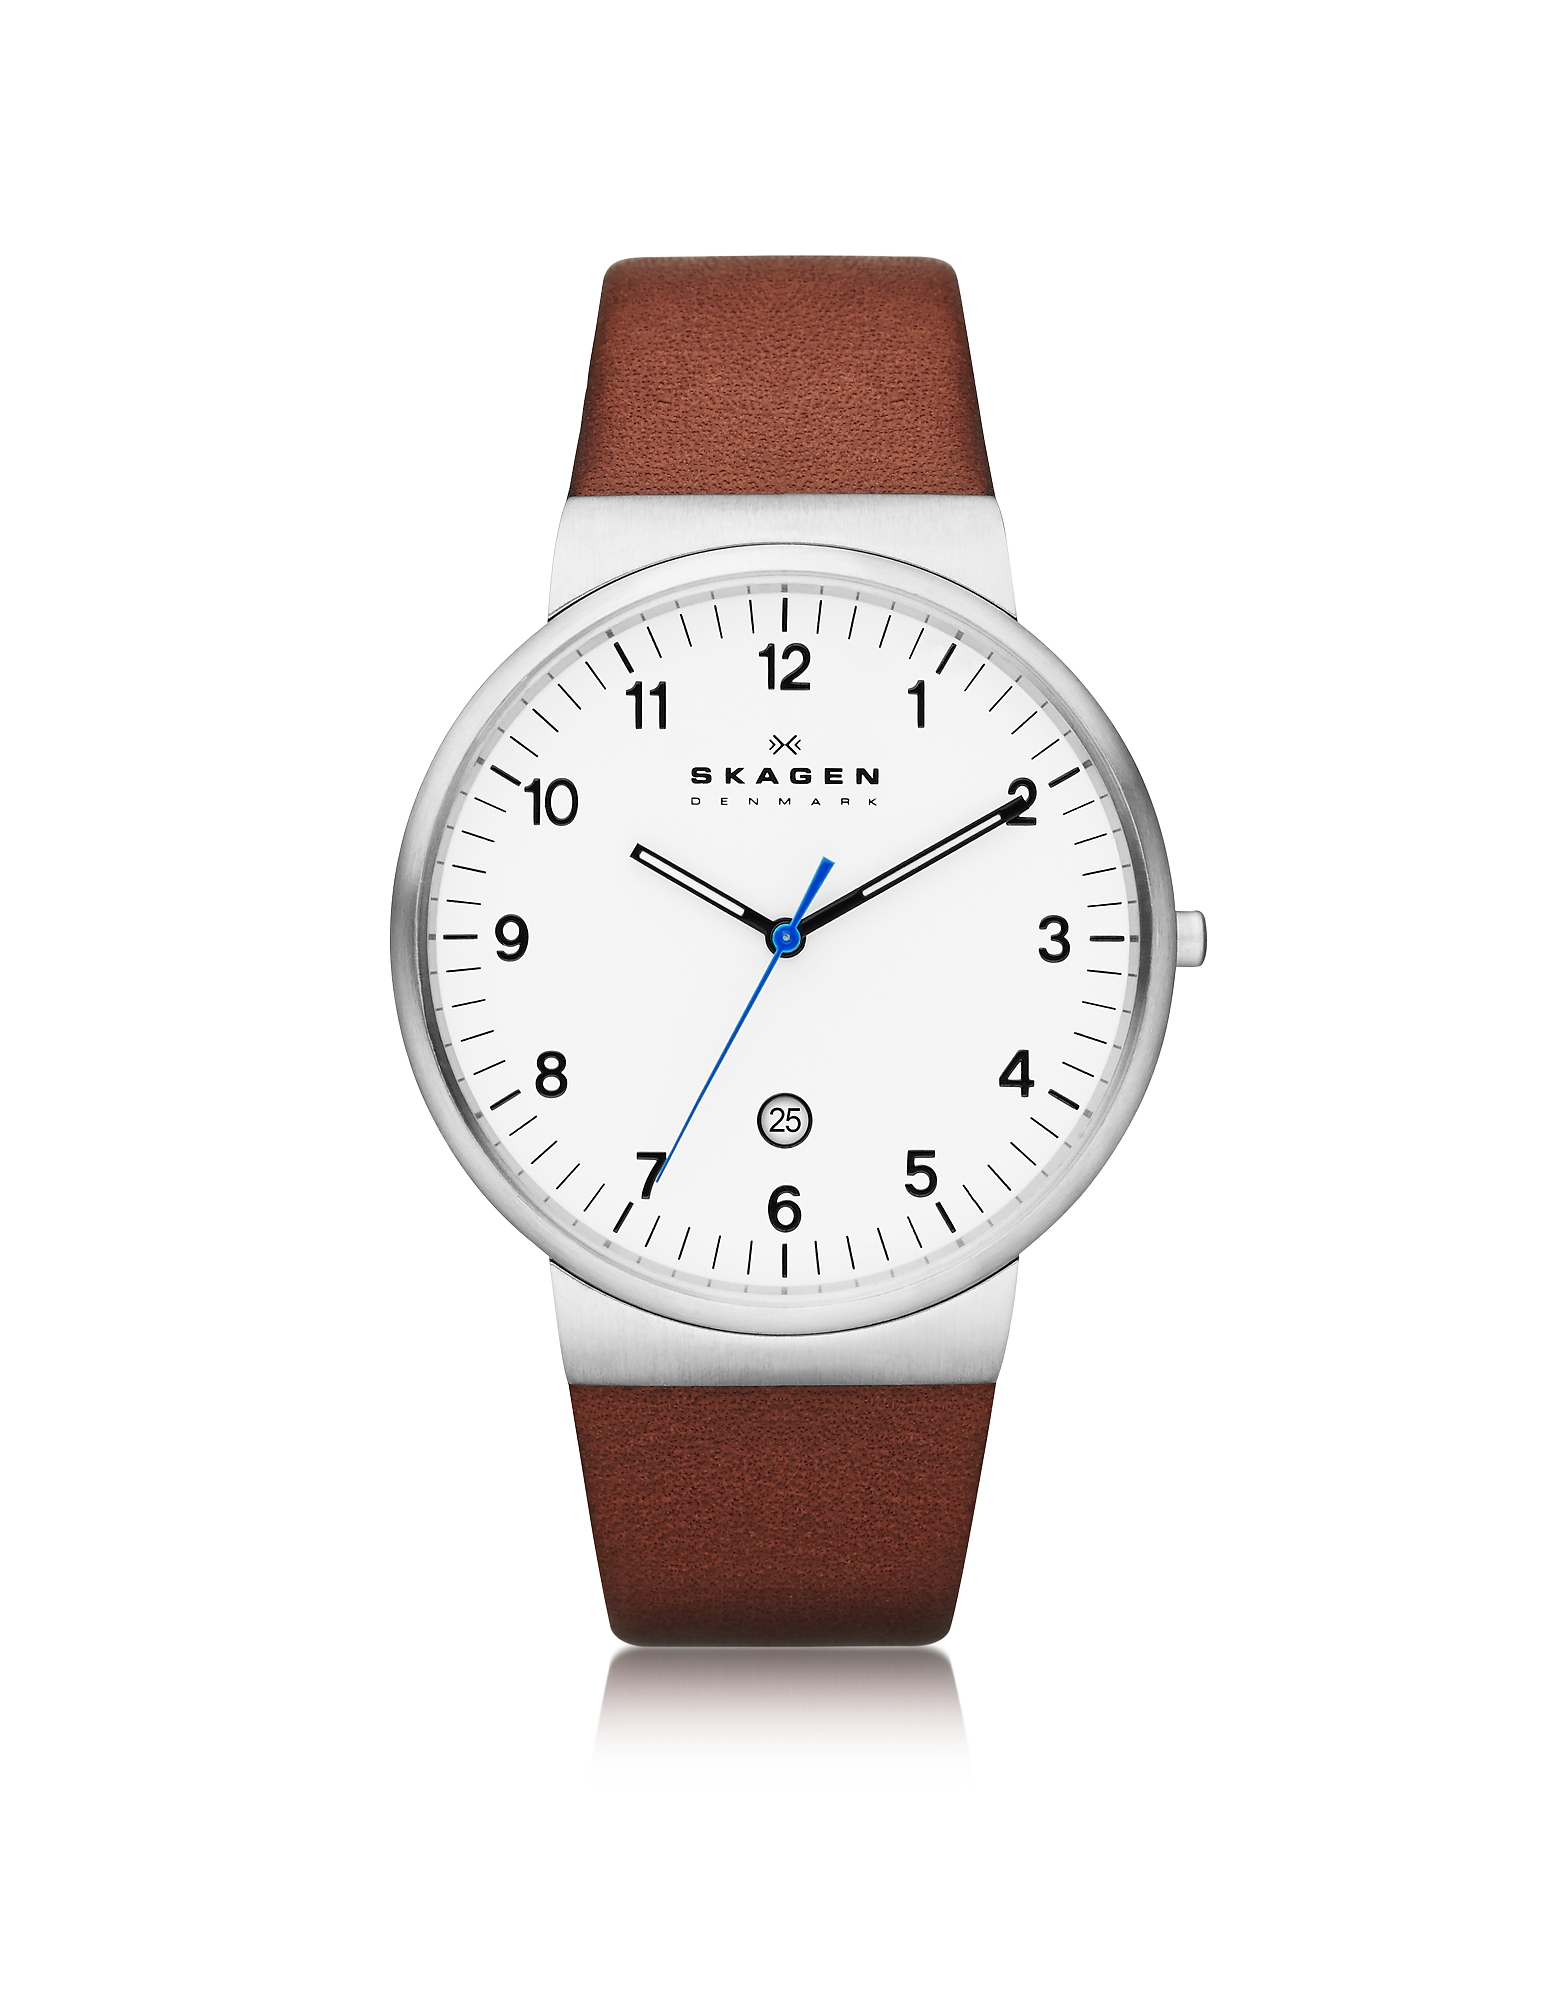 Image of Skagen Designer Men's Watches, Ancher Round Steel Case Men's Watch w/Leather Strap